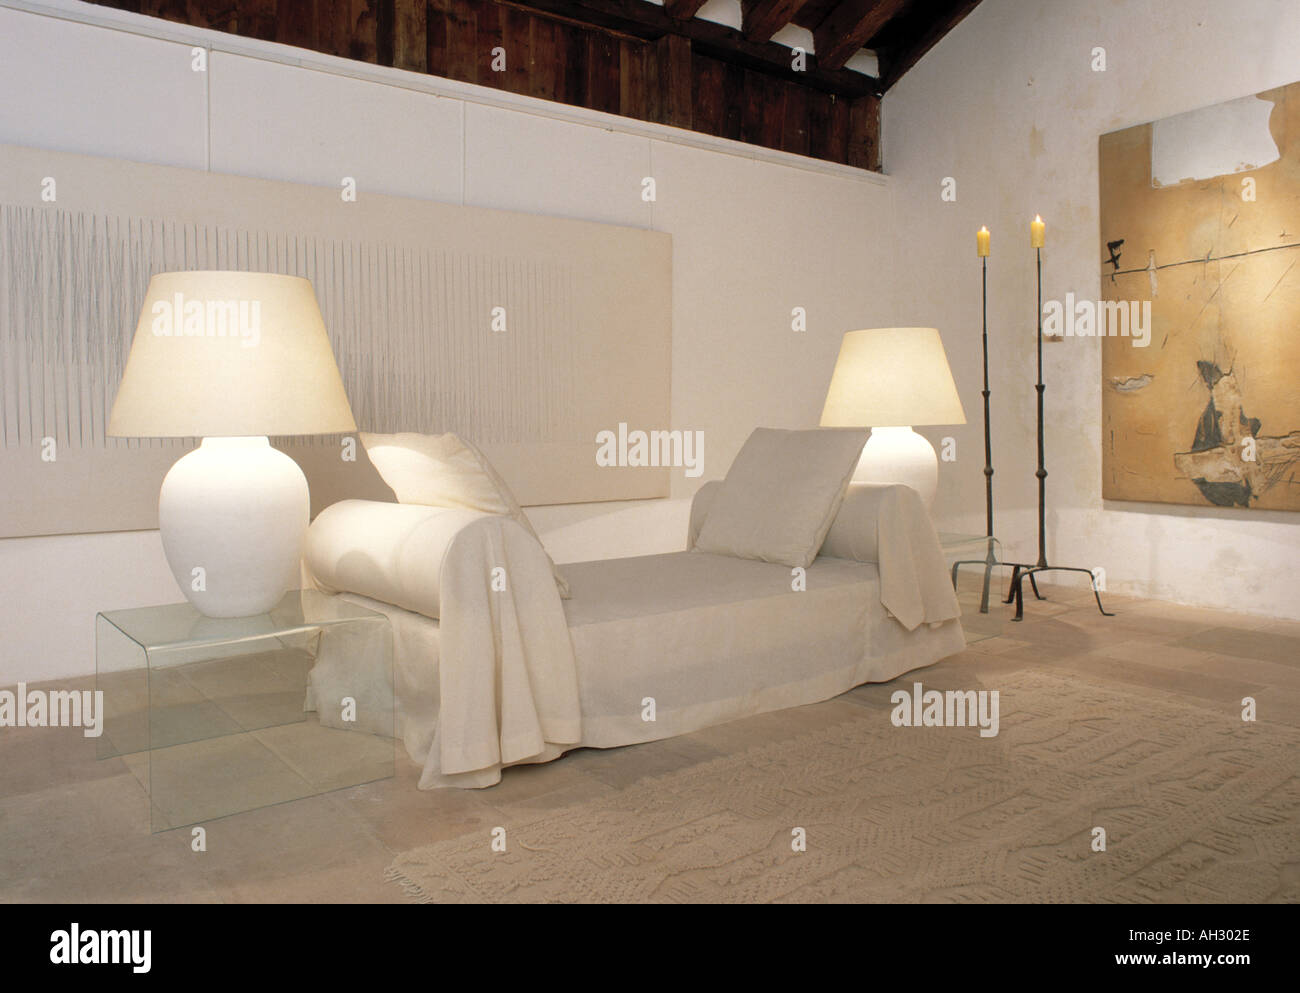 Side Lamps For Living Room Lighted White Lamps On Either Side Of Sofa With Loose Cover In All